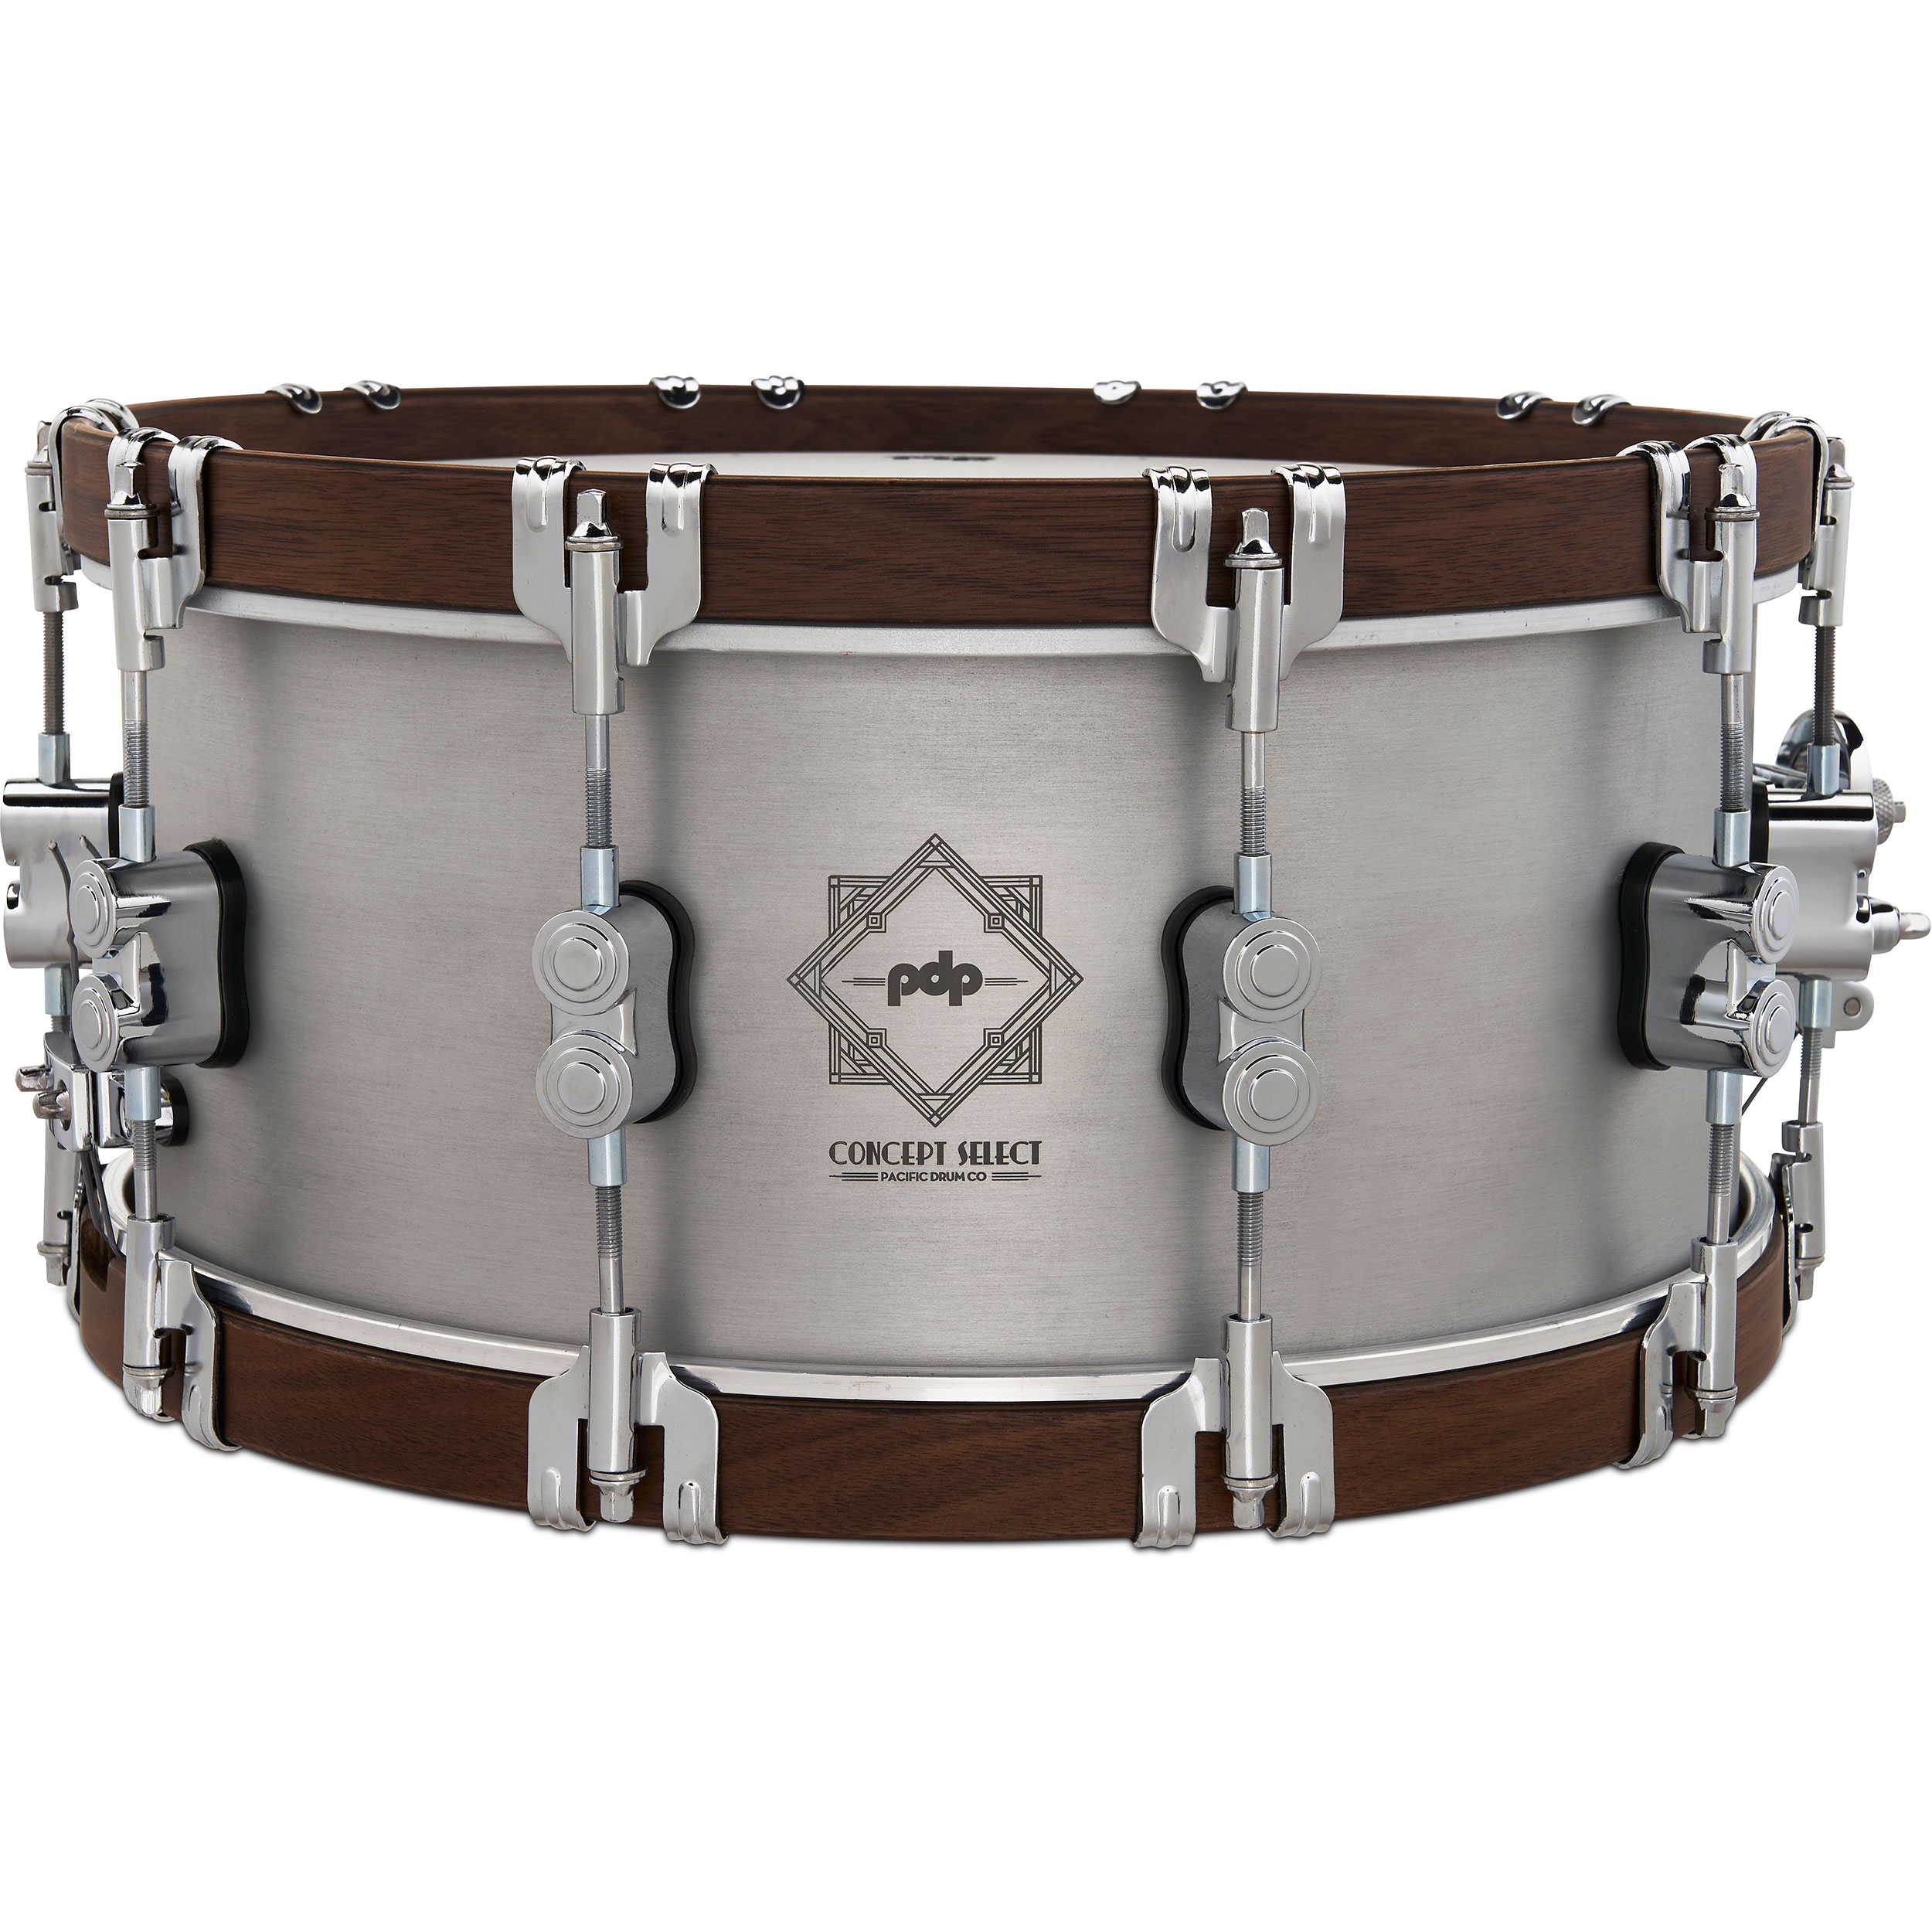 "PDP 6.5"" x 14"" Concept Select 3mm Aluminum Snare Drum with Wood Hoops"